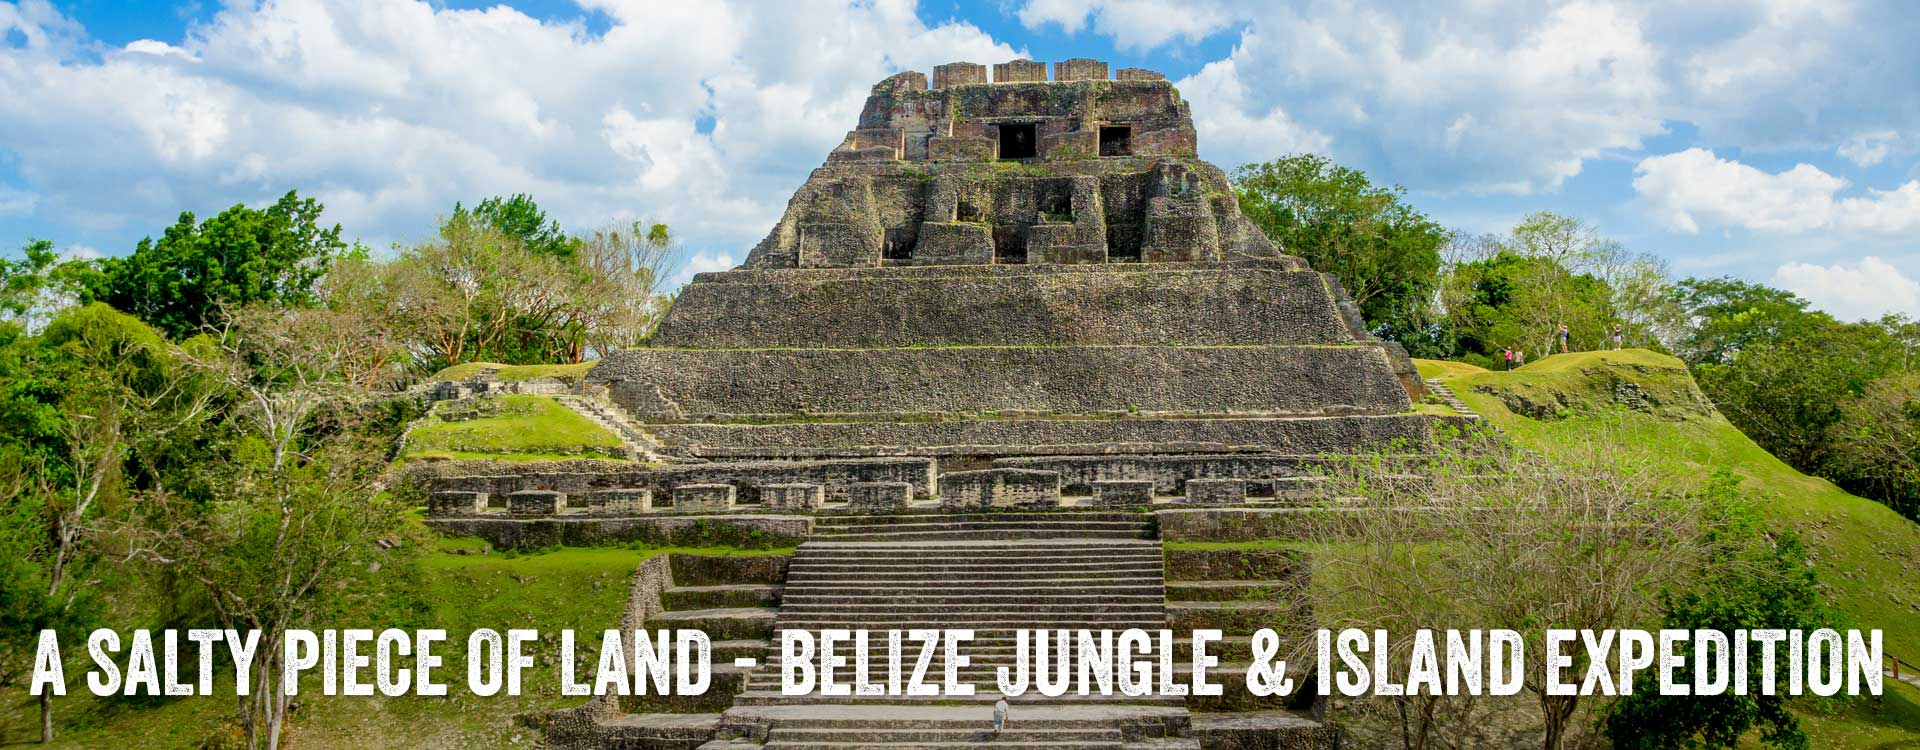 A Salty Piece of Land - Belize Jungle & Island Expedition